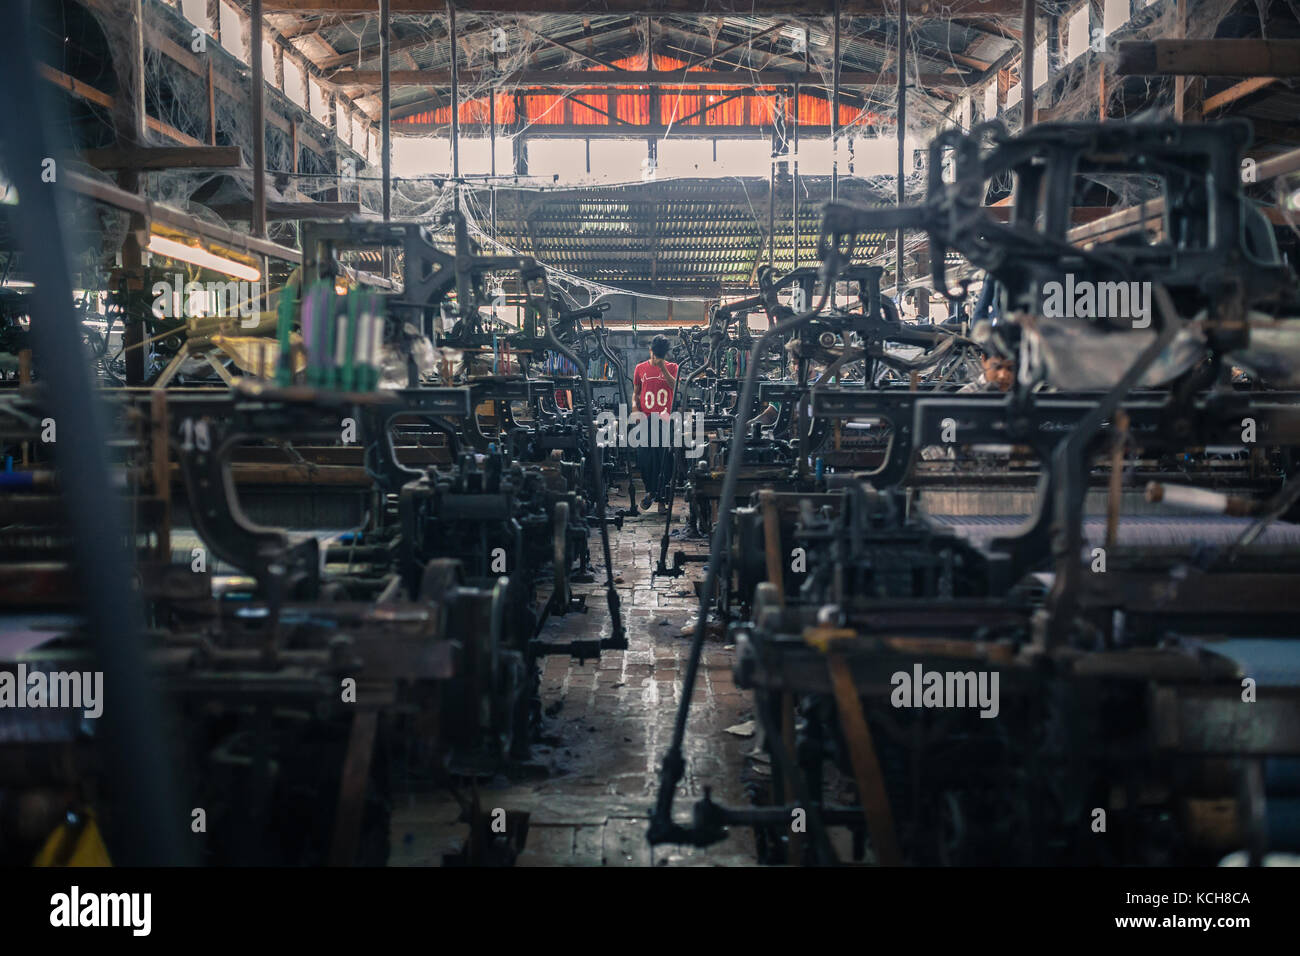 MANDALAY, MYANMAR - JANUARY 11, 2016: Unidentified man in a small silk factory on the outskirts of Mandalay, Myanmar - Stock Image